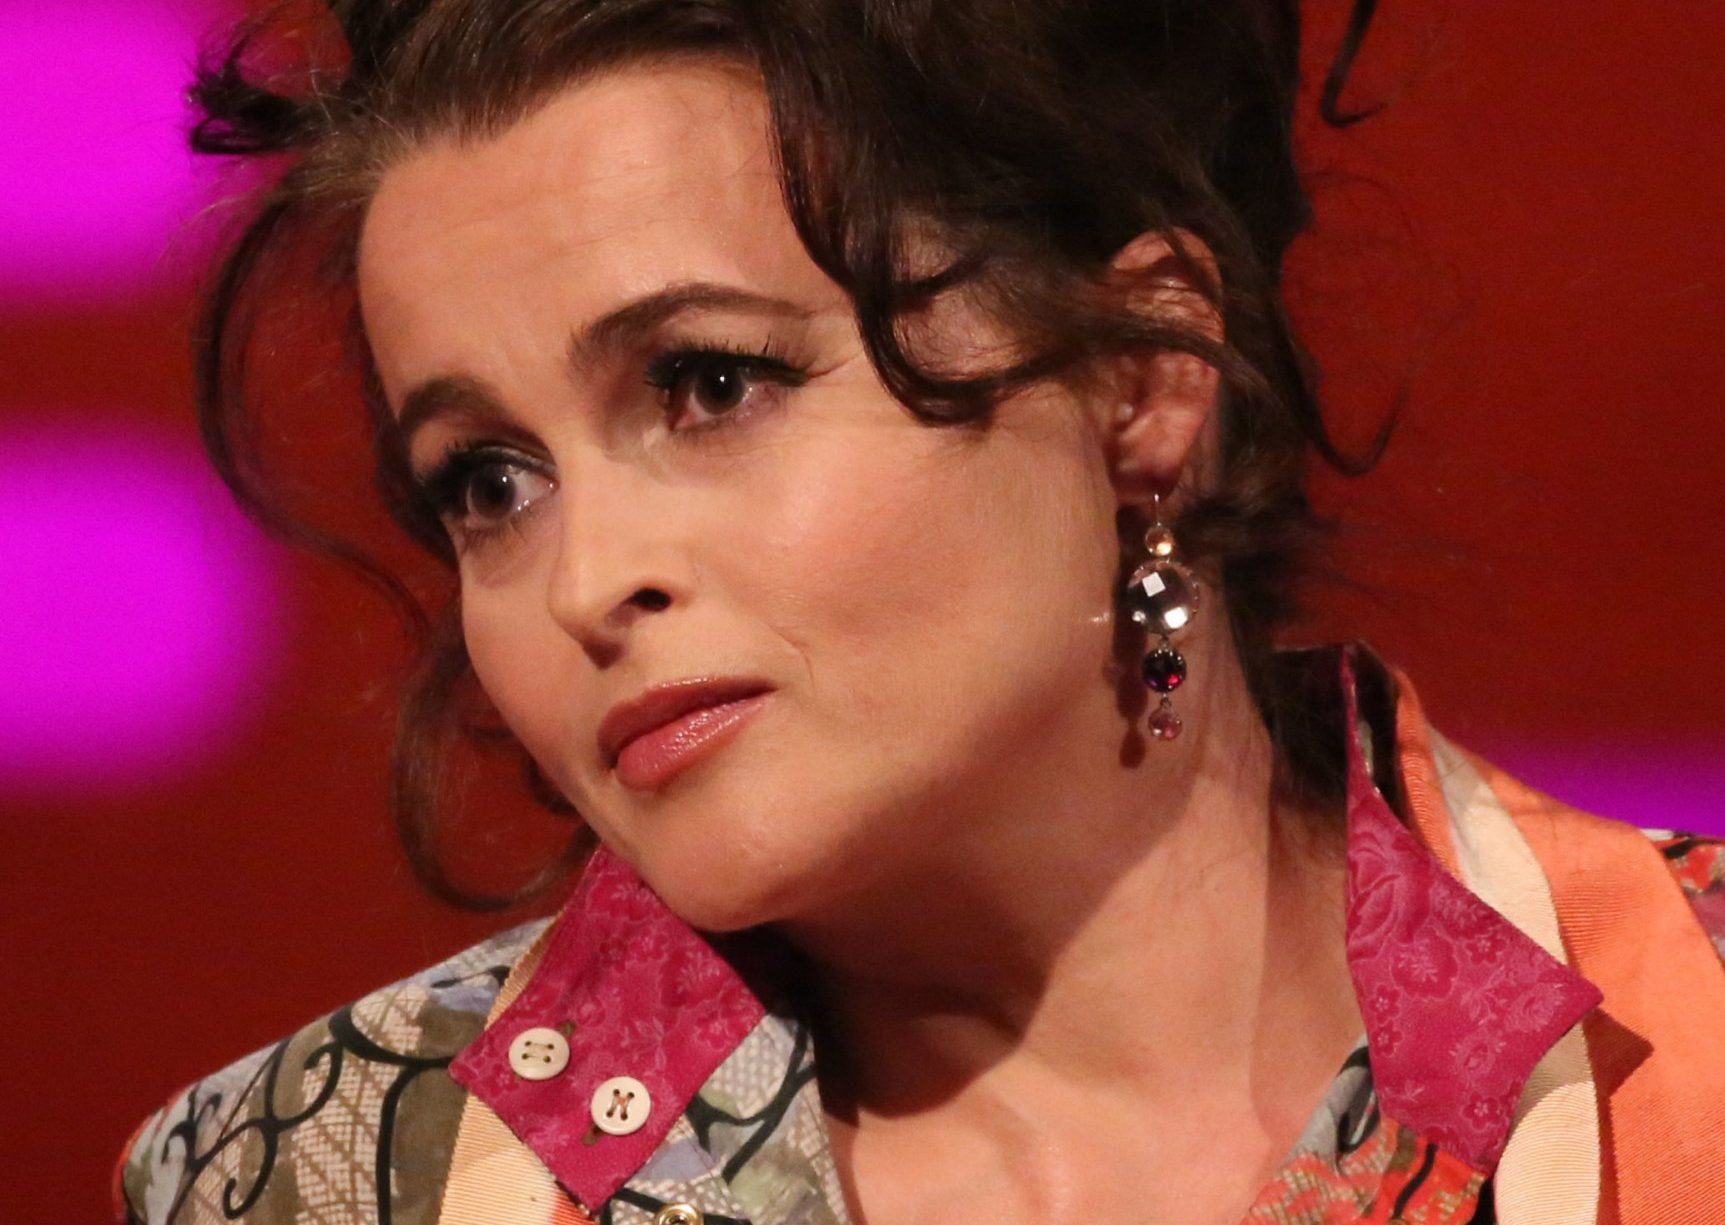 Helena bonham carter showing boobs in getting it right